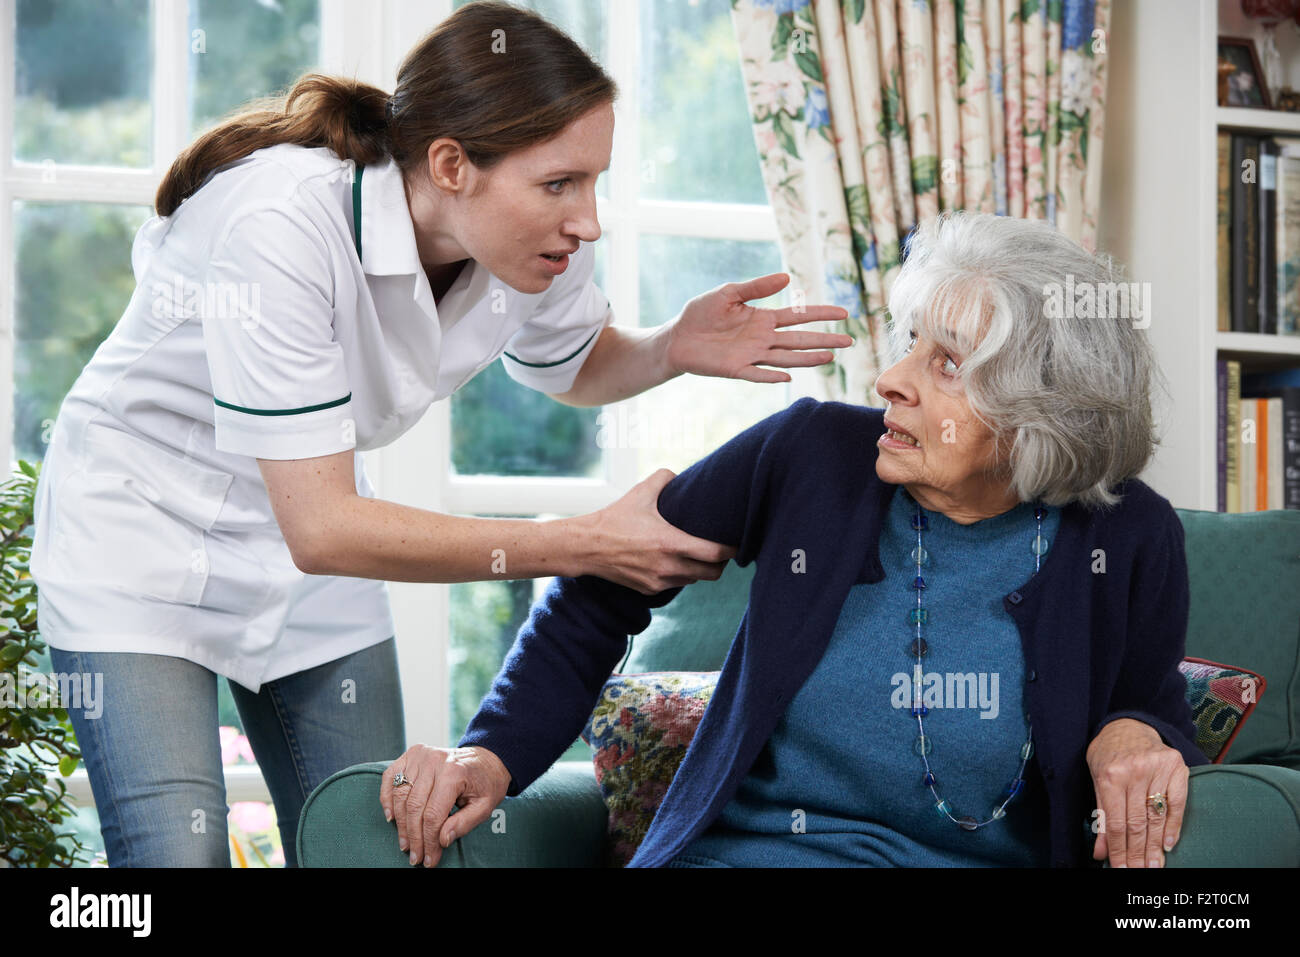 Care Worker Mistreating Senior Woman At Home - Stock Image